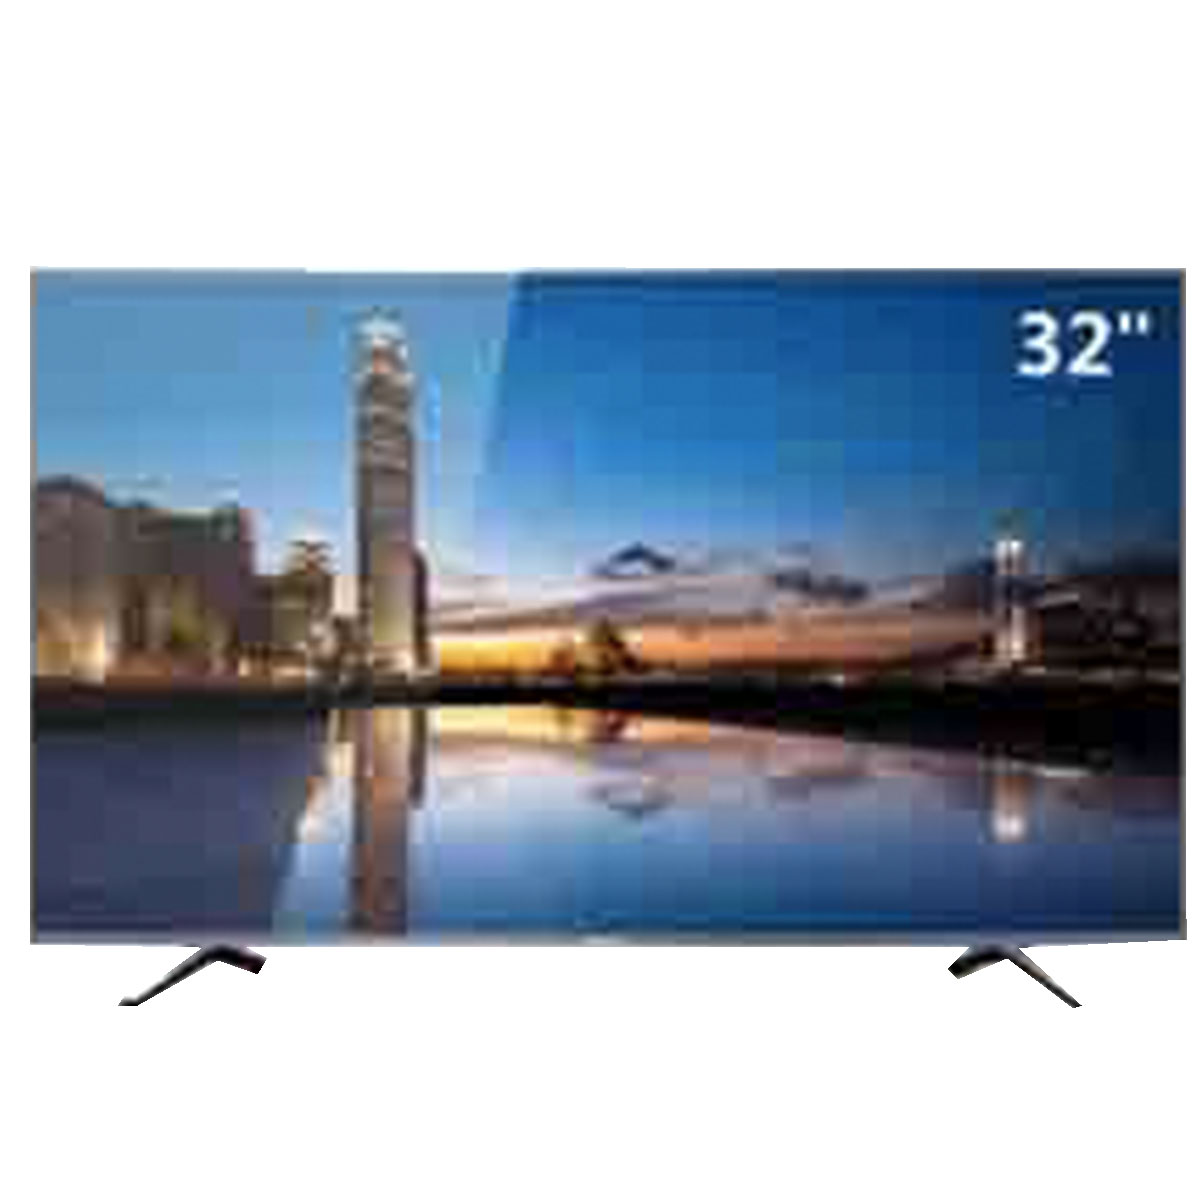 Hisense 32 Inch Full HD LED TV (32N2173)